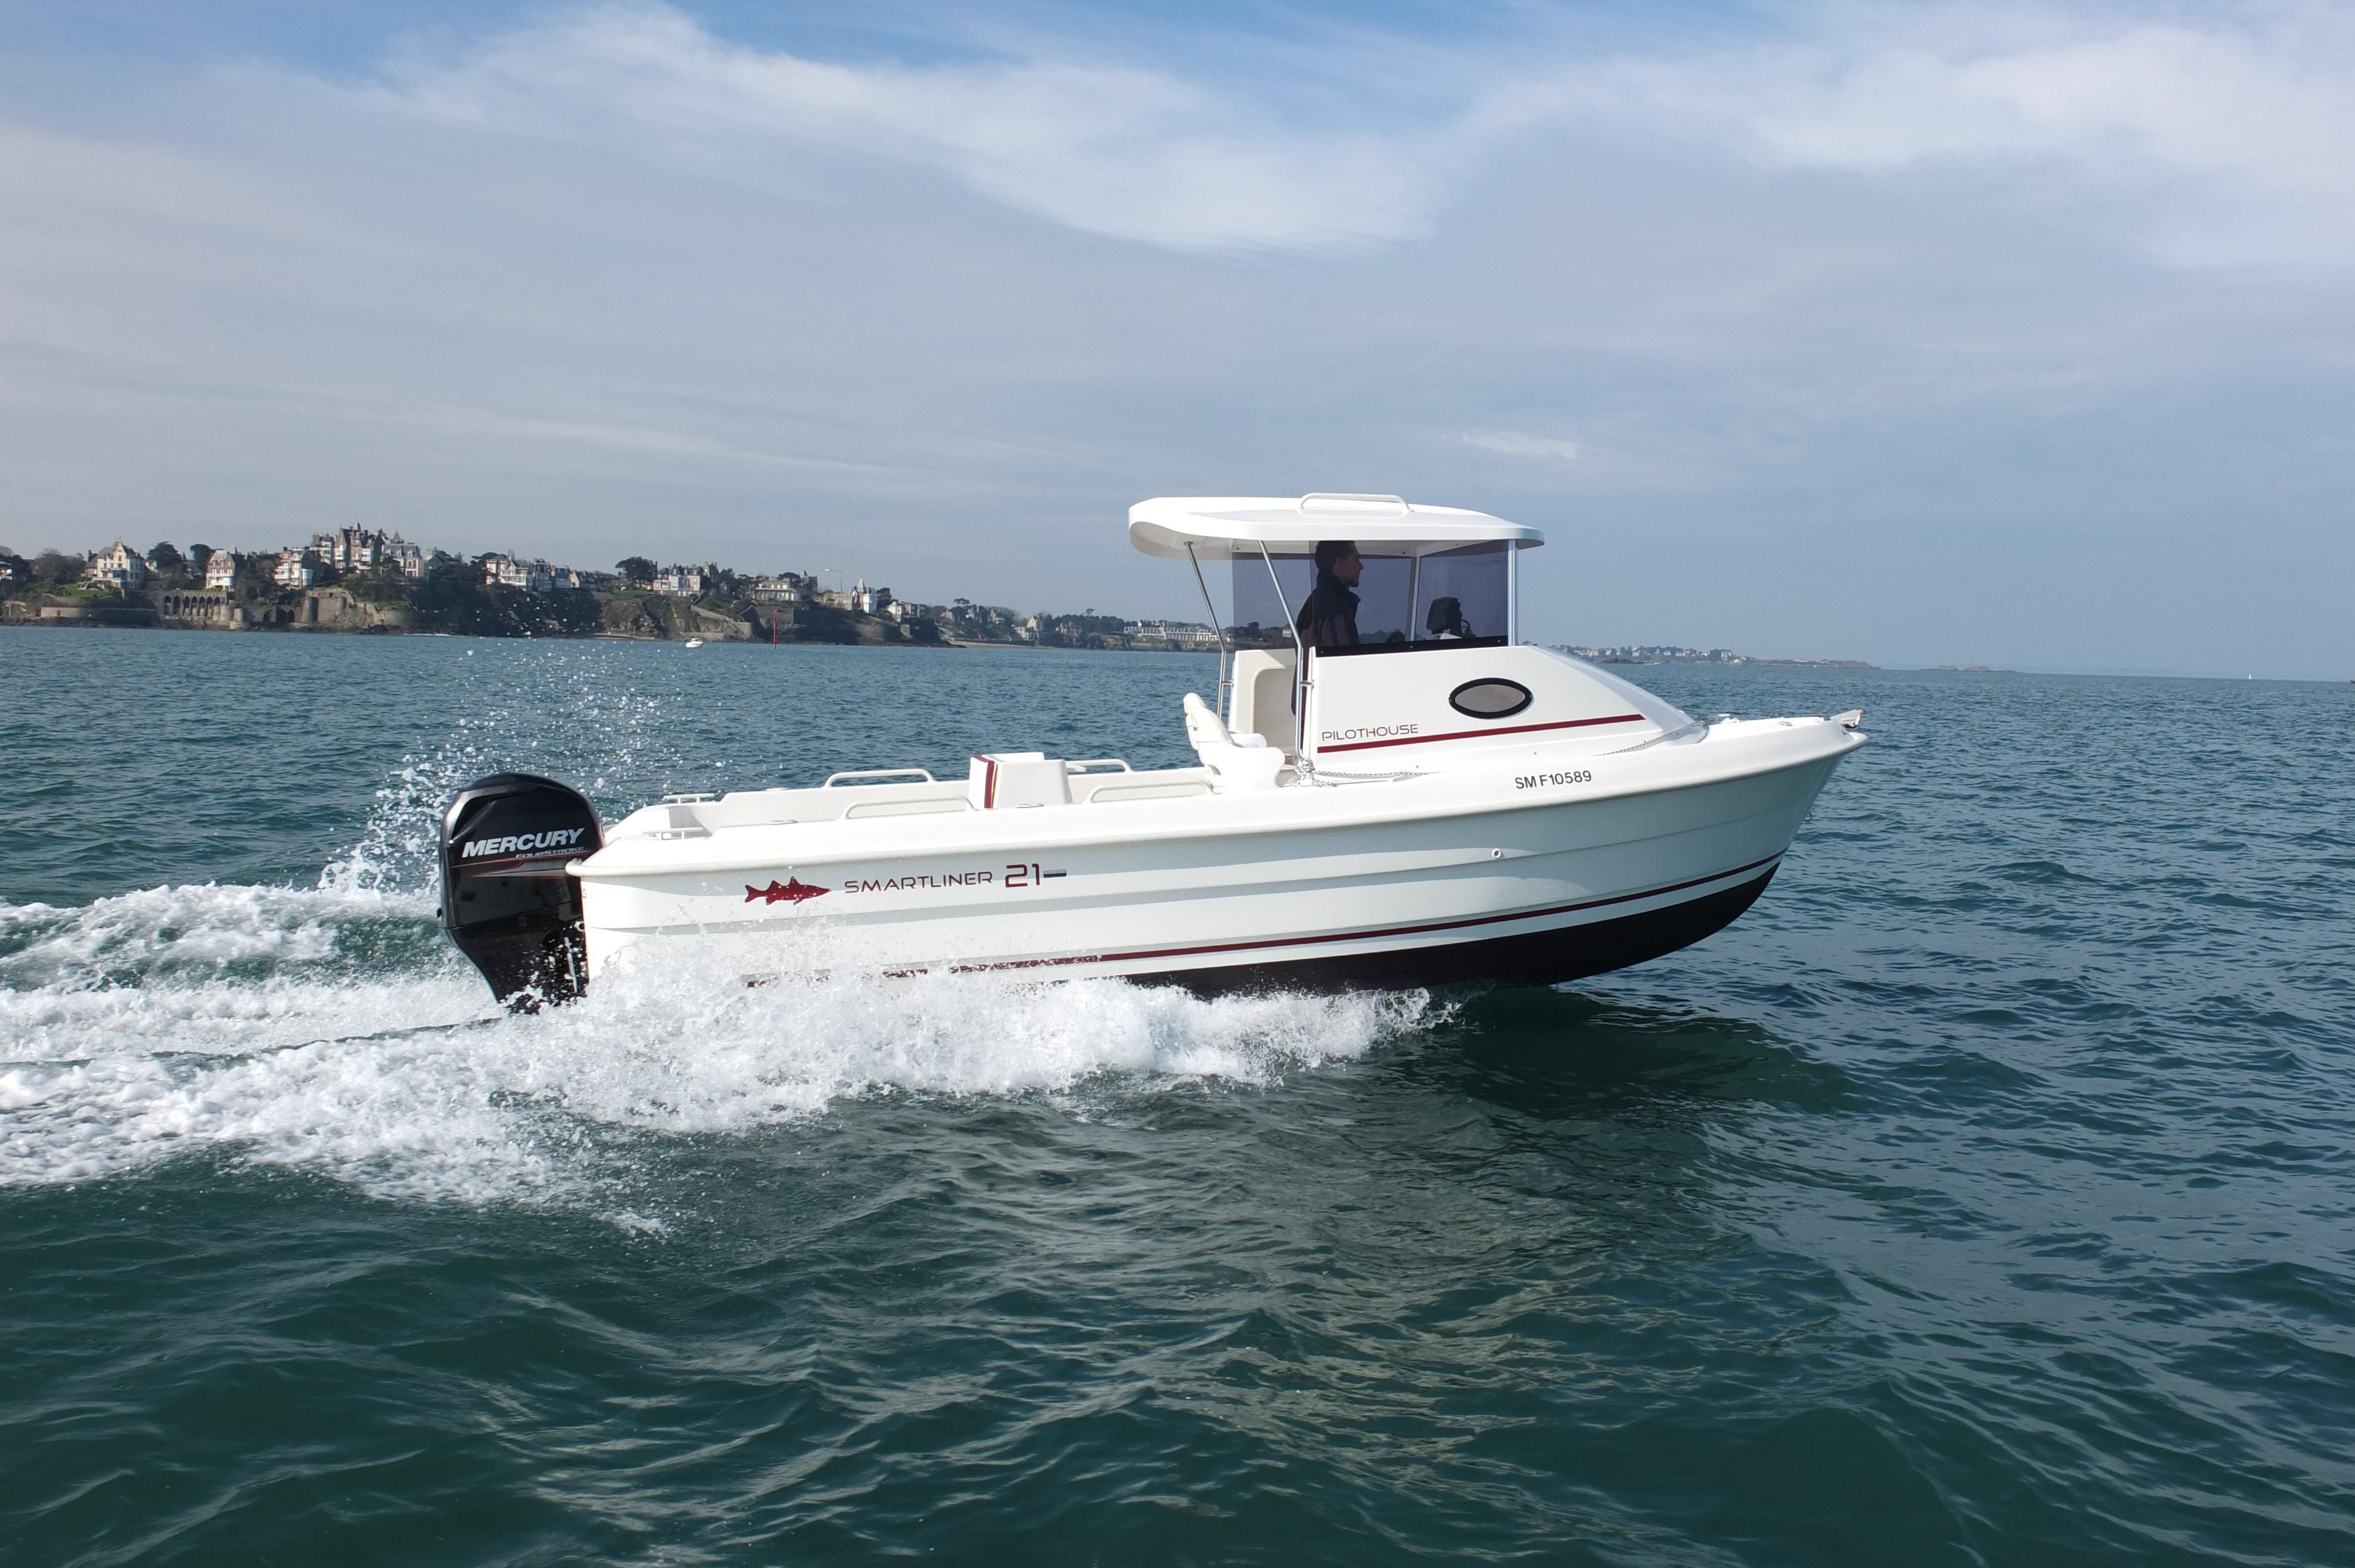 2018 smartliner 21 pilot house power boat for sale www for Pilot house fishing boats